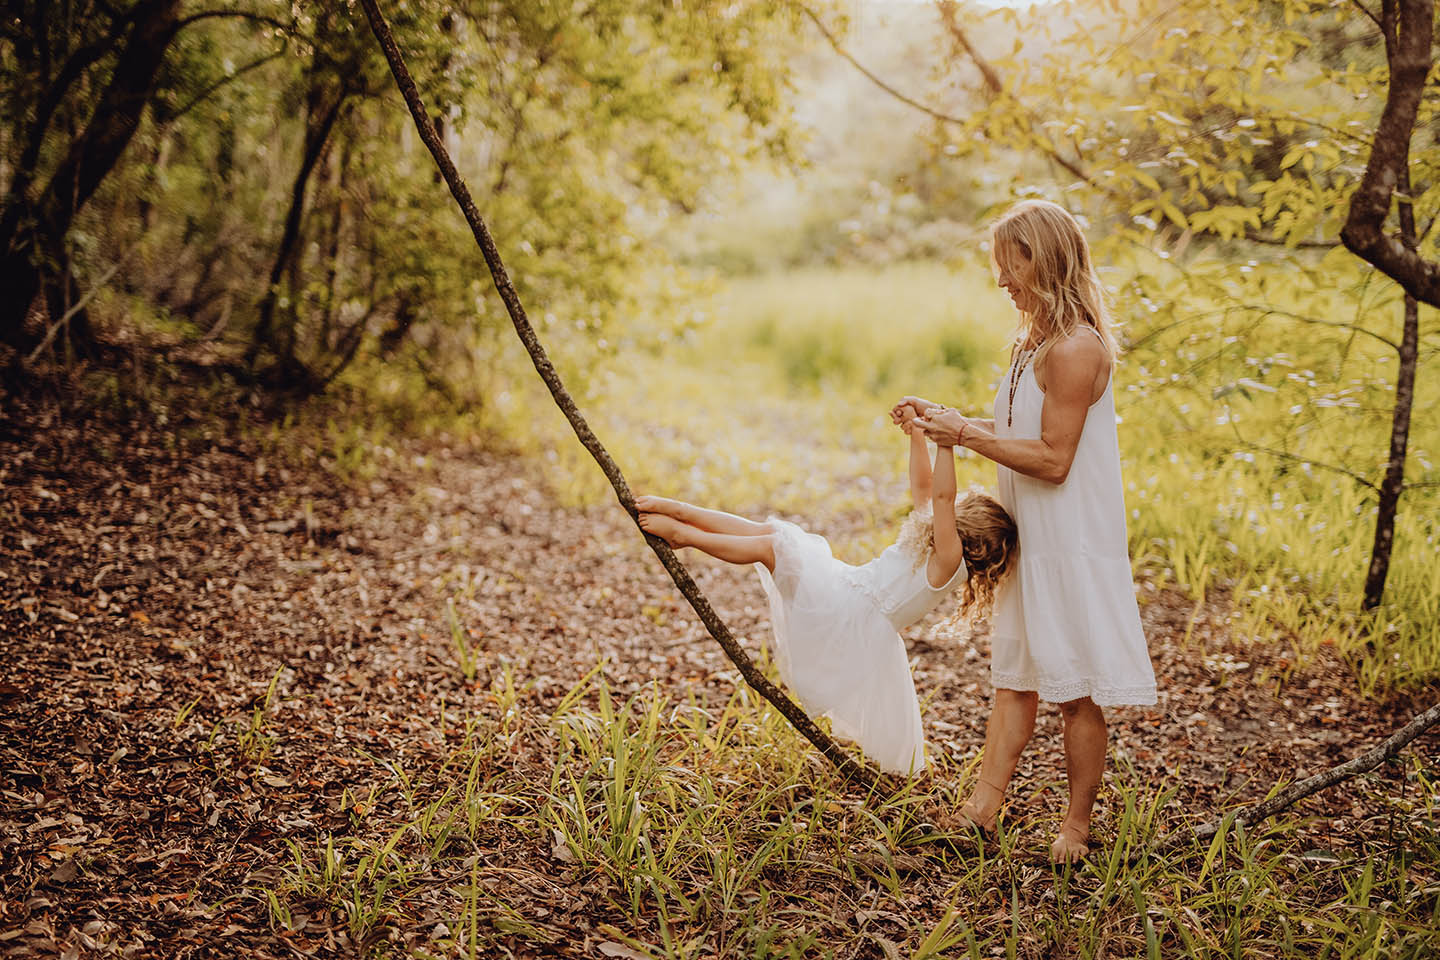 Mother and daughter, family session, on location, Valla nsw, Alice Payne photography